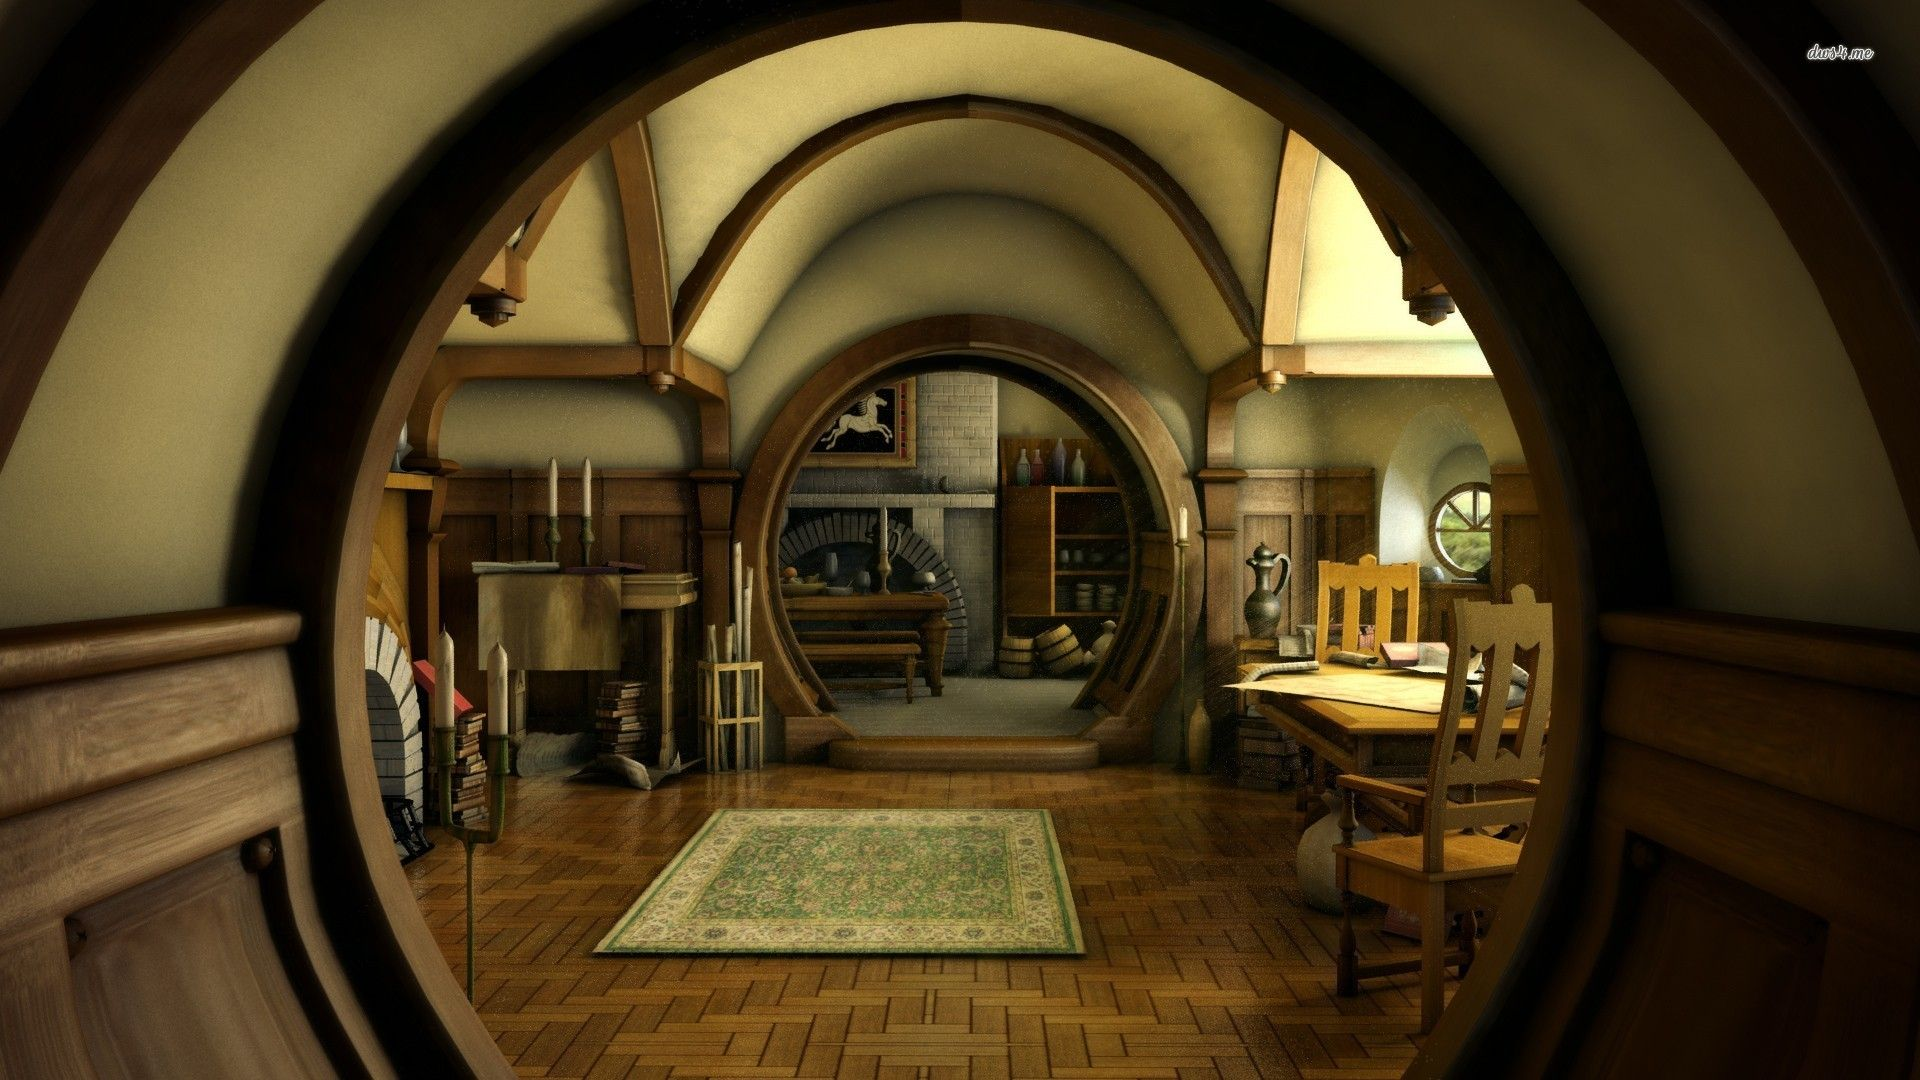 16453 hobbit house the hobbit 1920x1080 movie wallpaper for How to start building a house